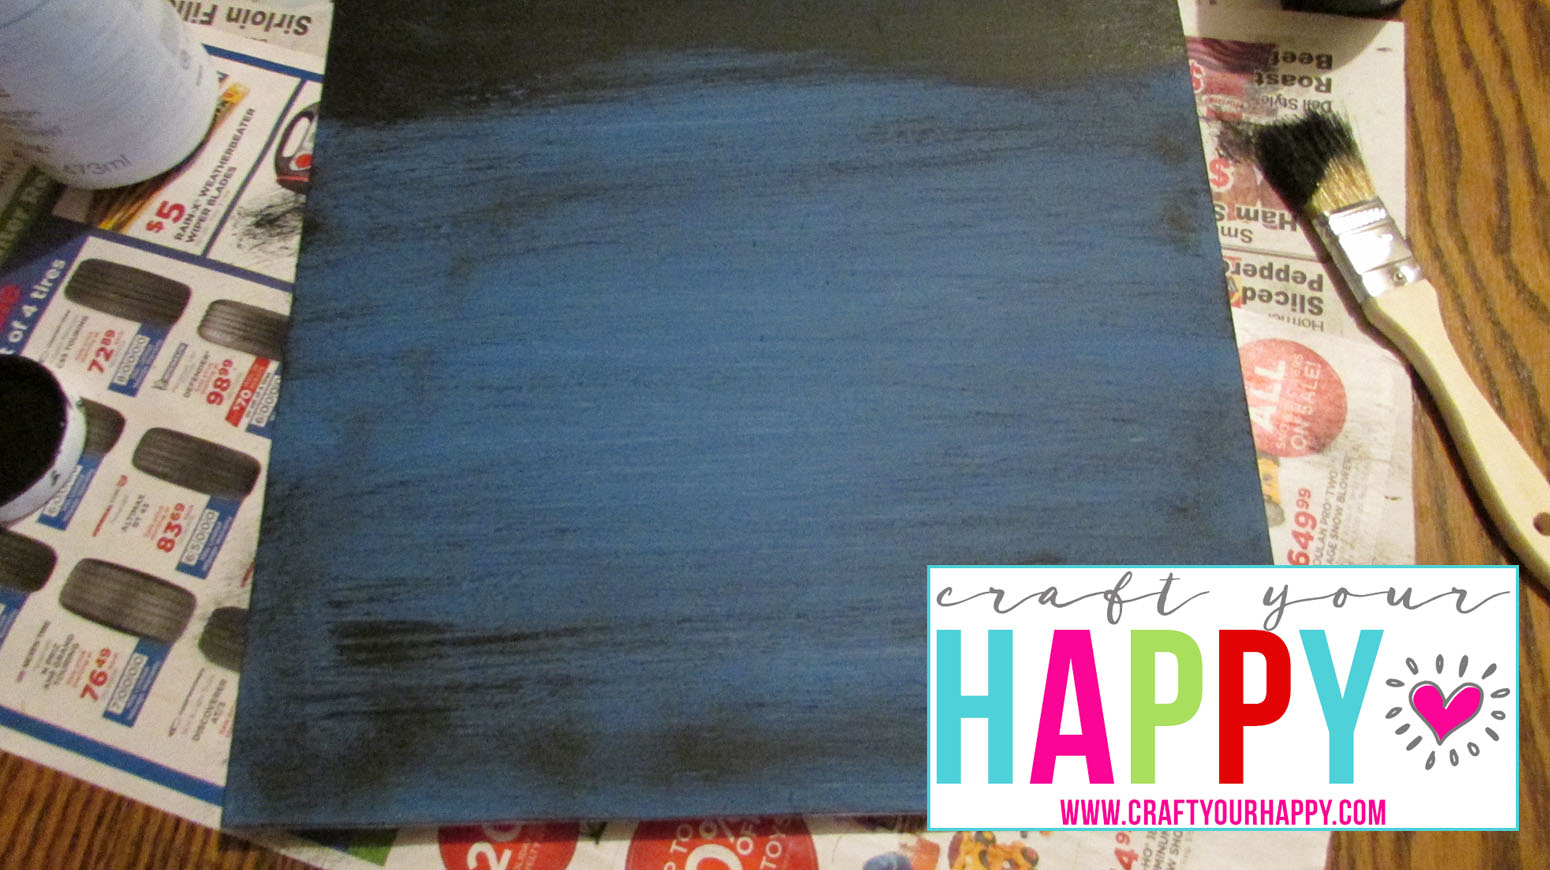 Free Cut File The Thrill Of Hope The Weary World Rejoices - painting the board blue and dry brushing with black.